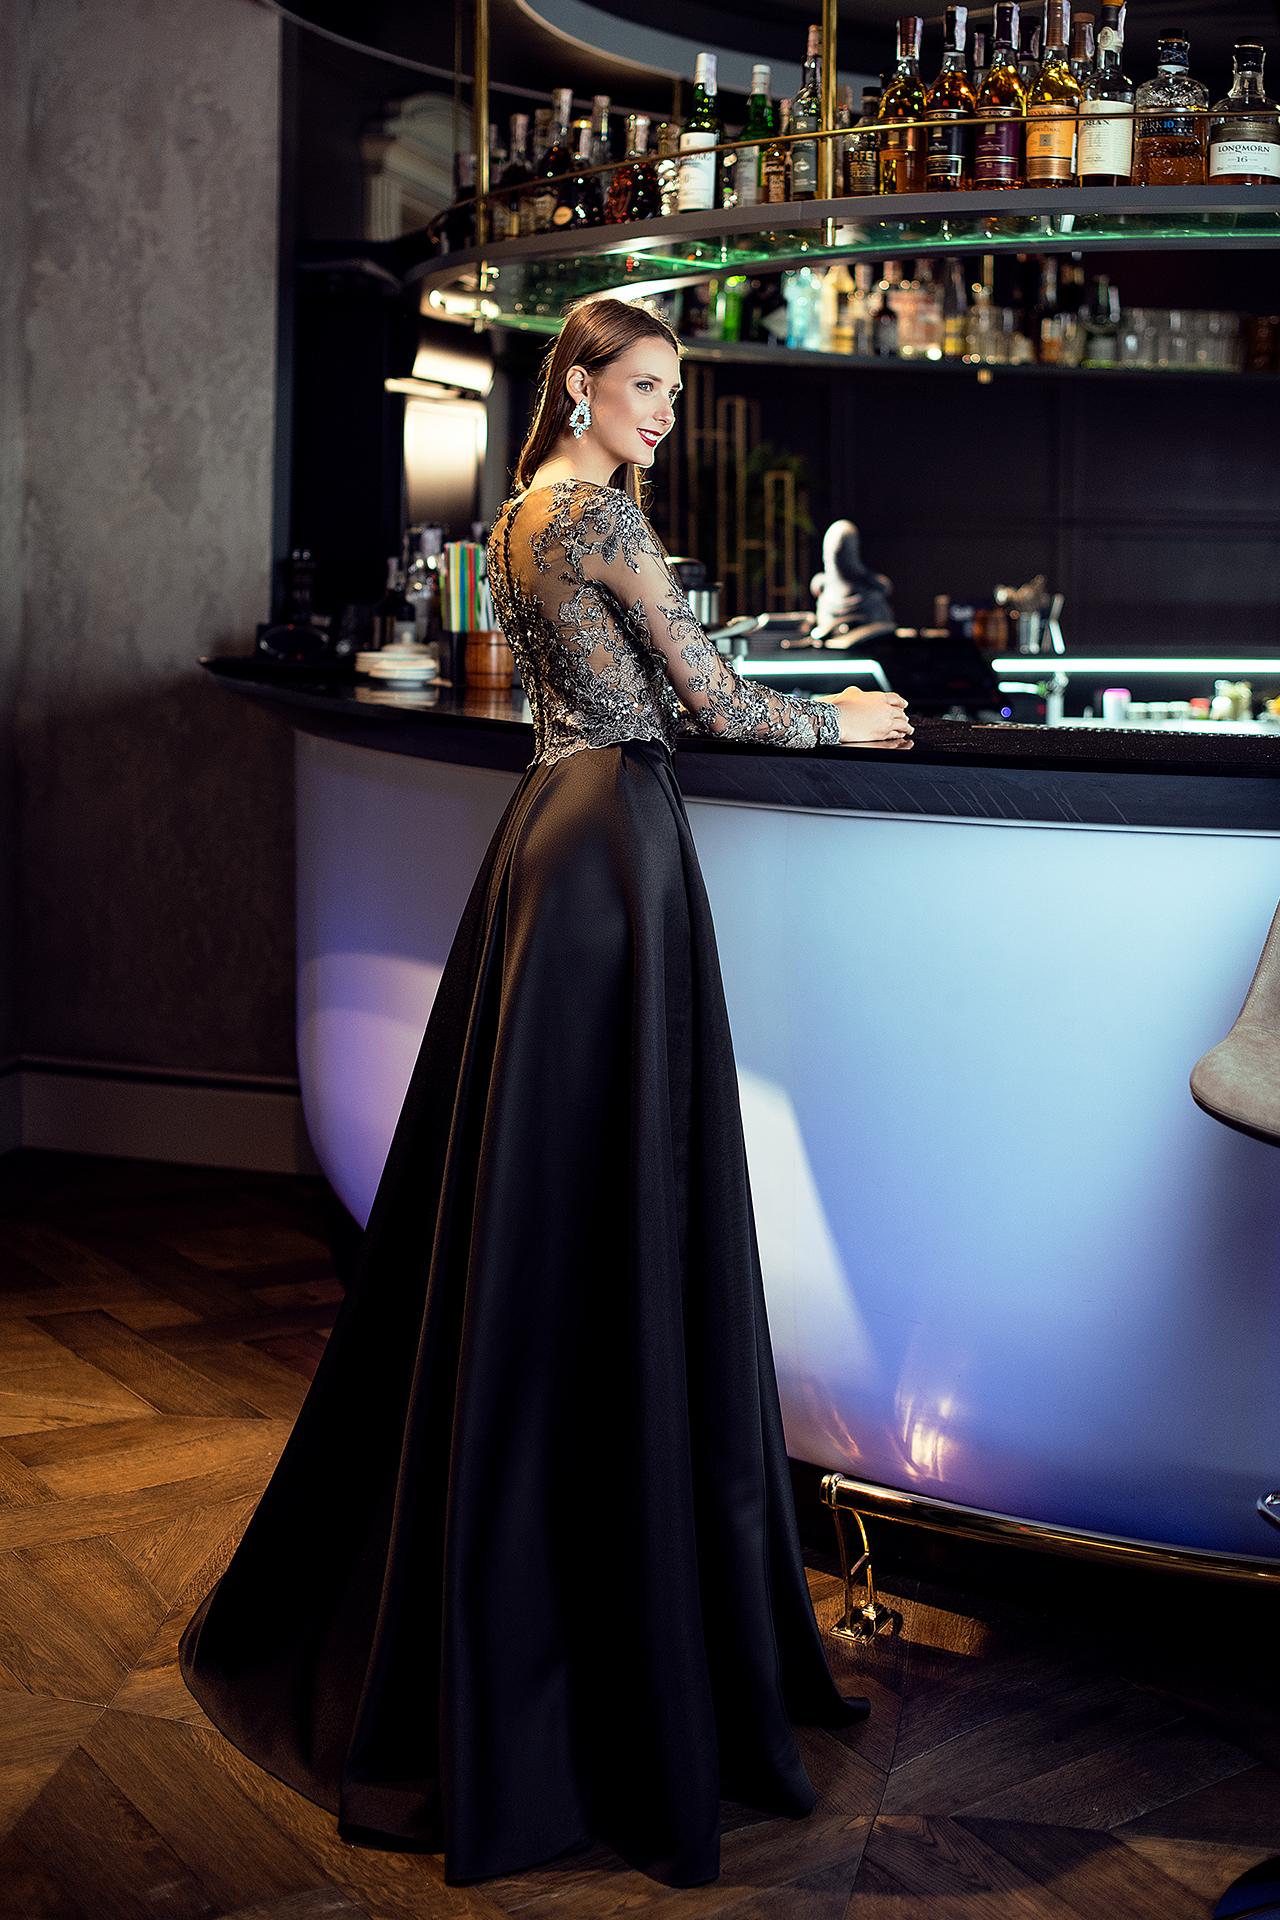 Evening gowns S-1392 Silhouette  A Line  Color  Black  Neckline  Jewel  Sleeves  Long Sleeves  Fitted  Train  No train - foto 4